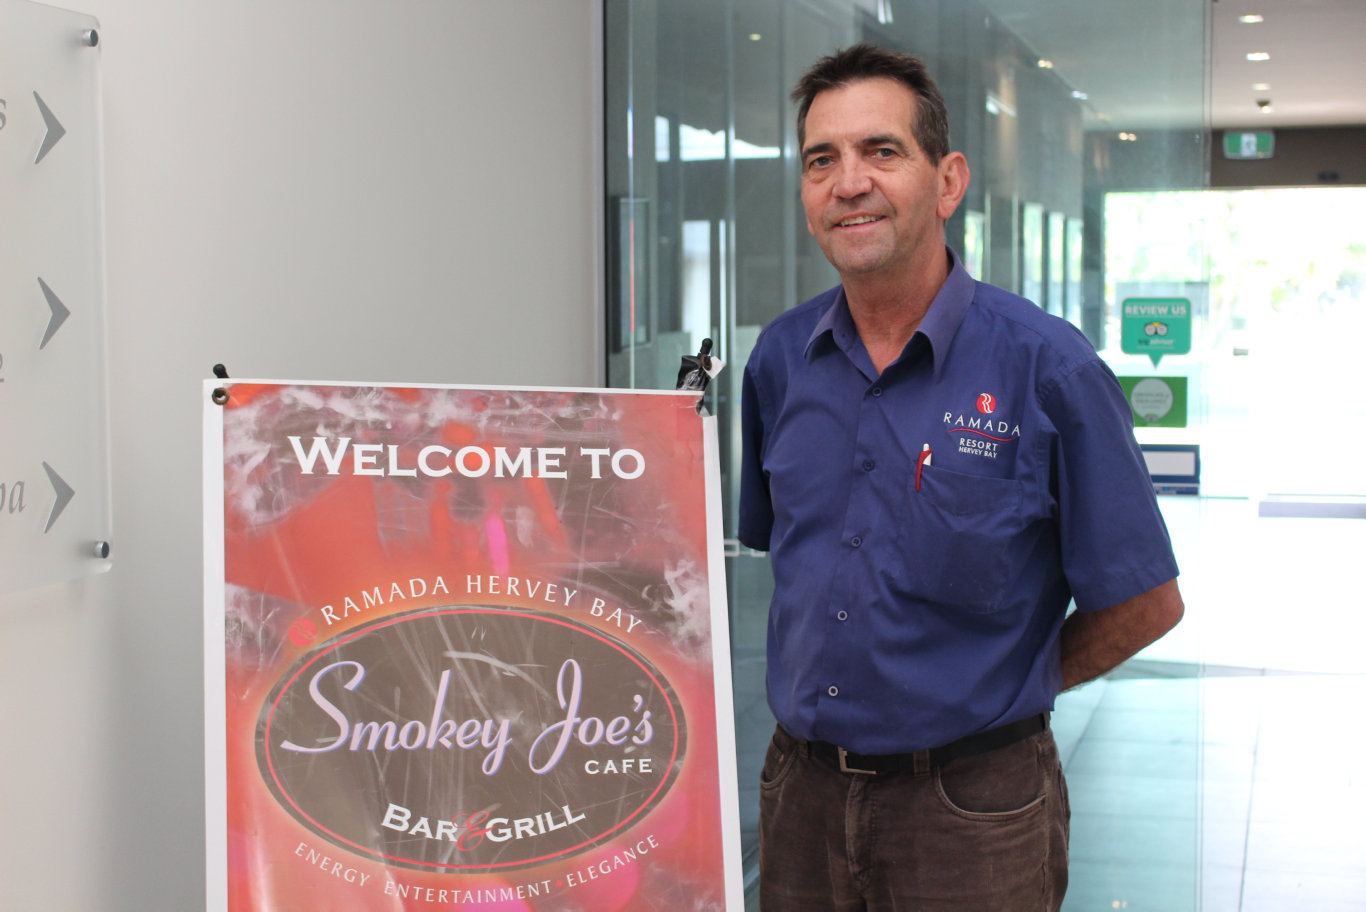 Ramada by Wyndham Hervey Bay manager Peter Bard.